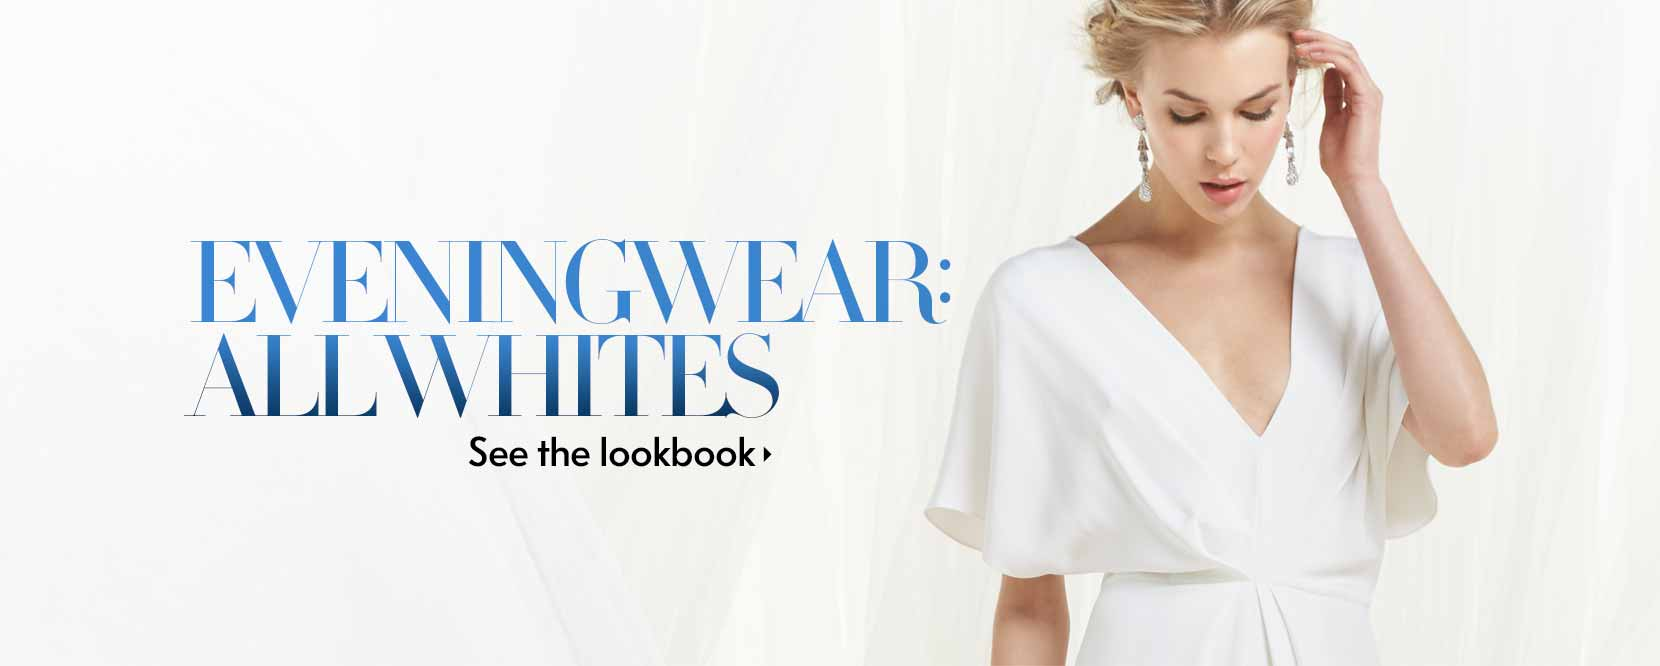 Eveningwear: All Whites